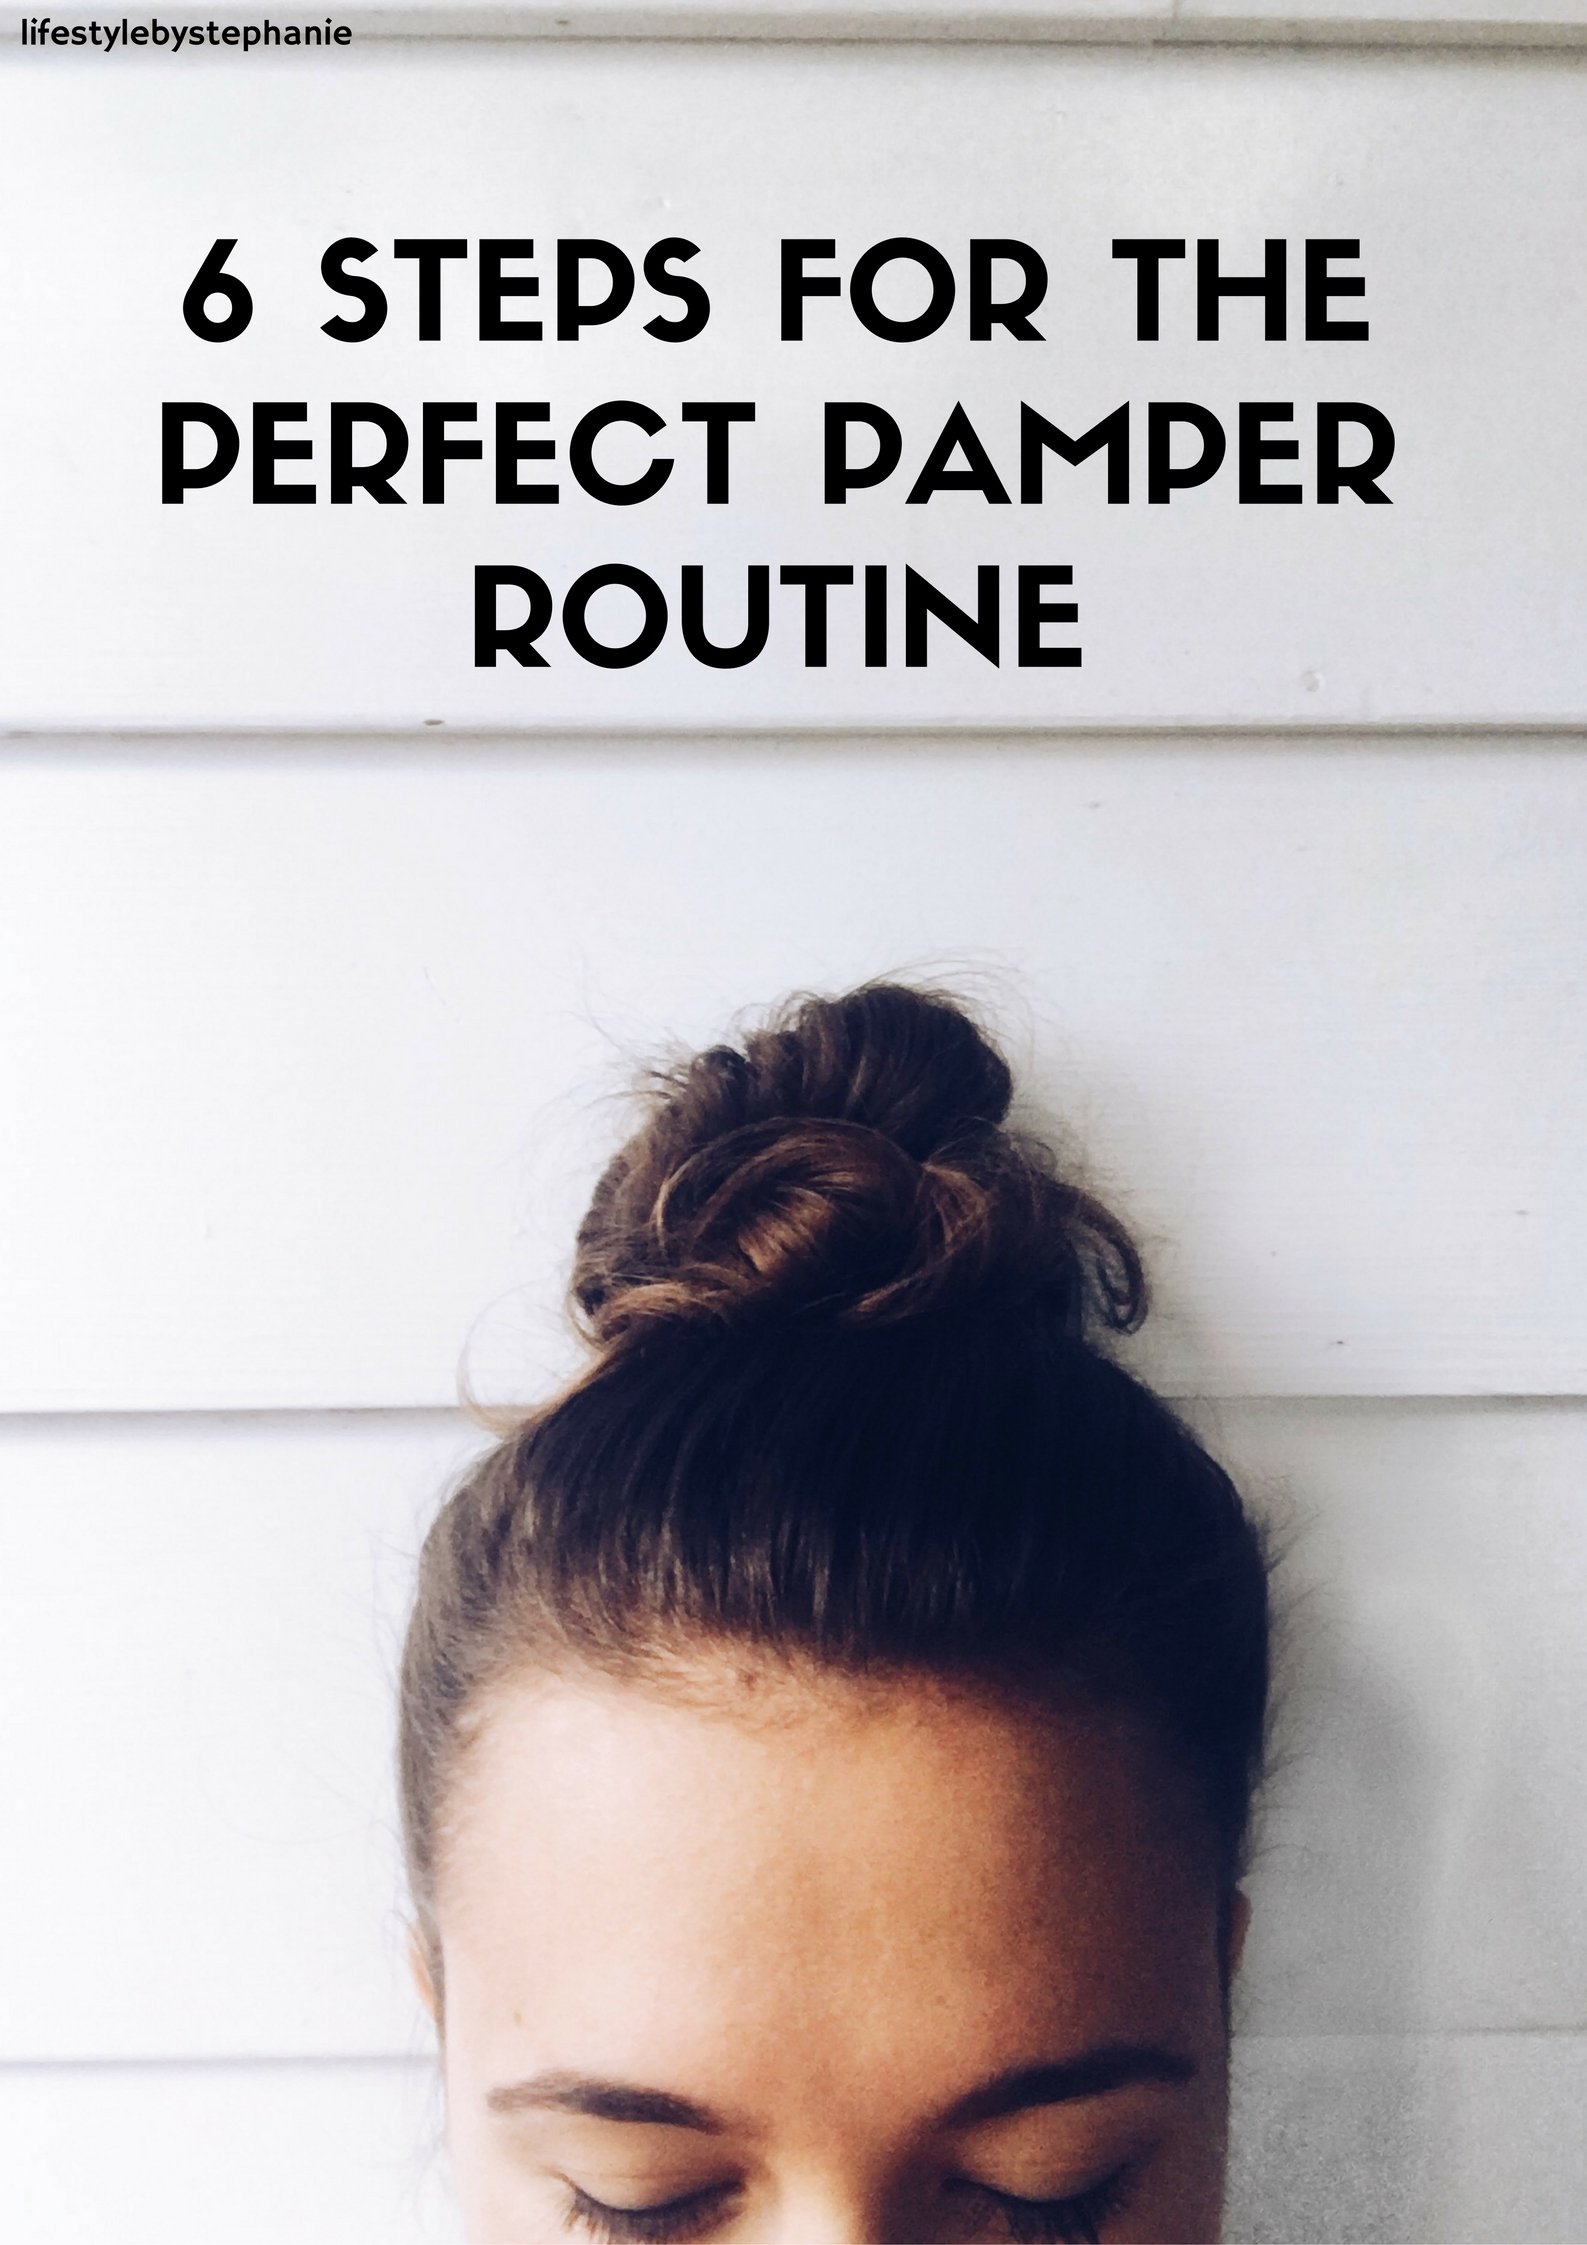 blog-6-steps-for-the-perfect-pamper-routine